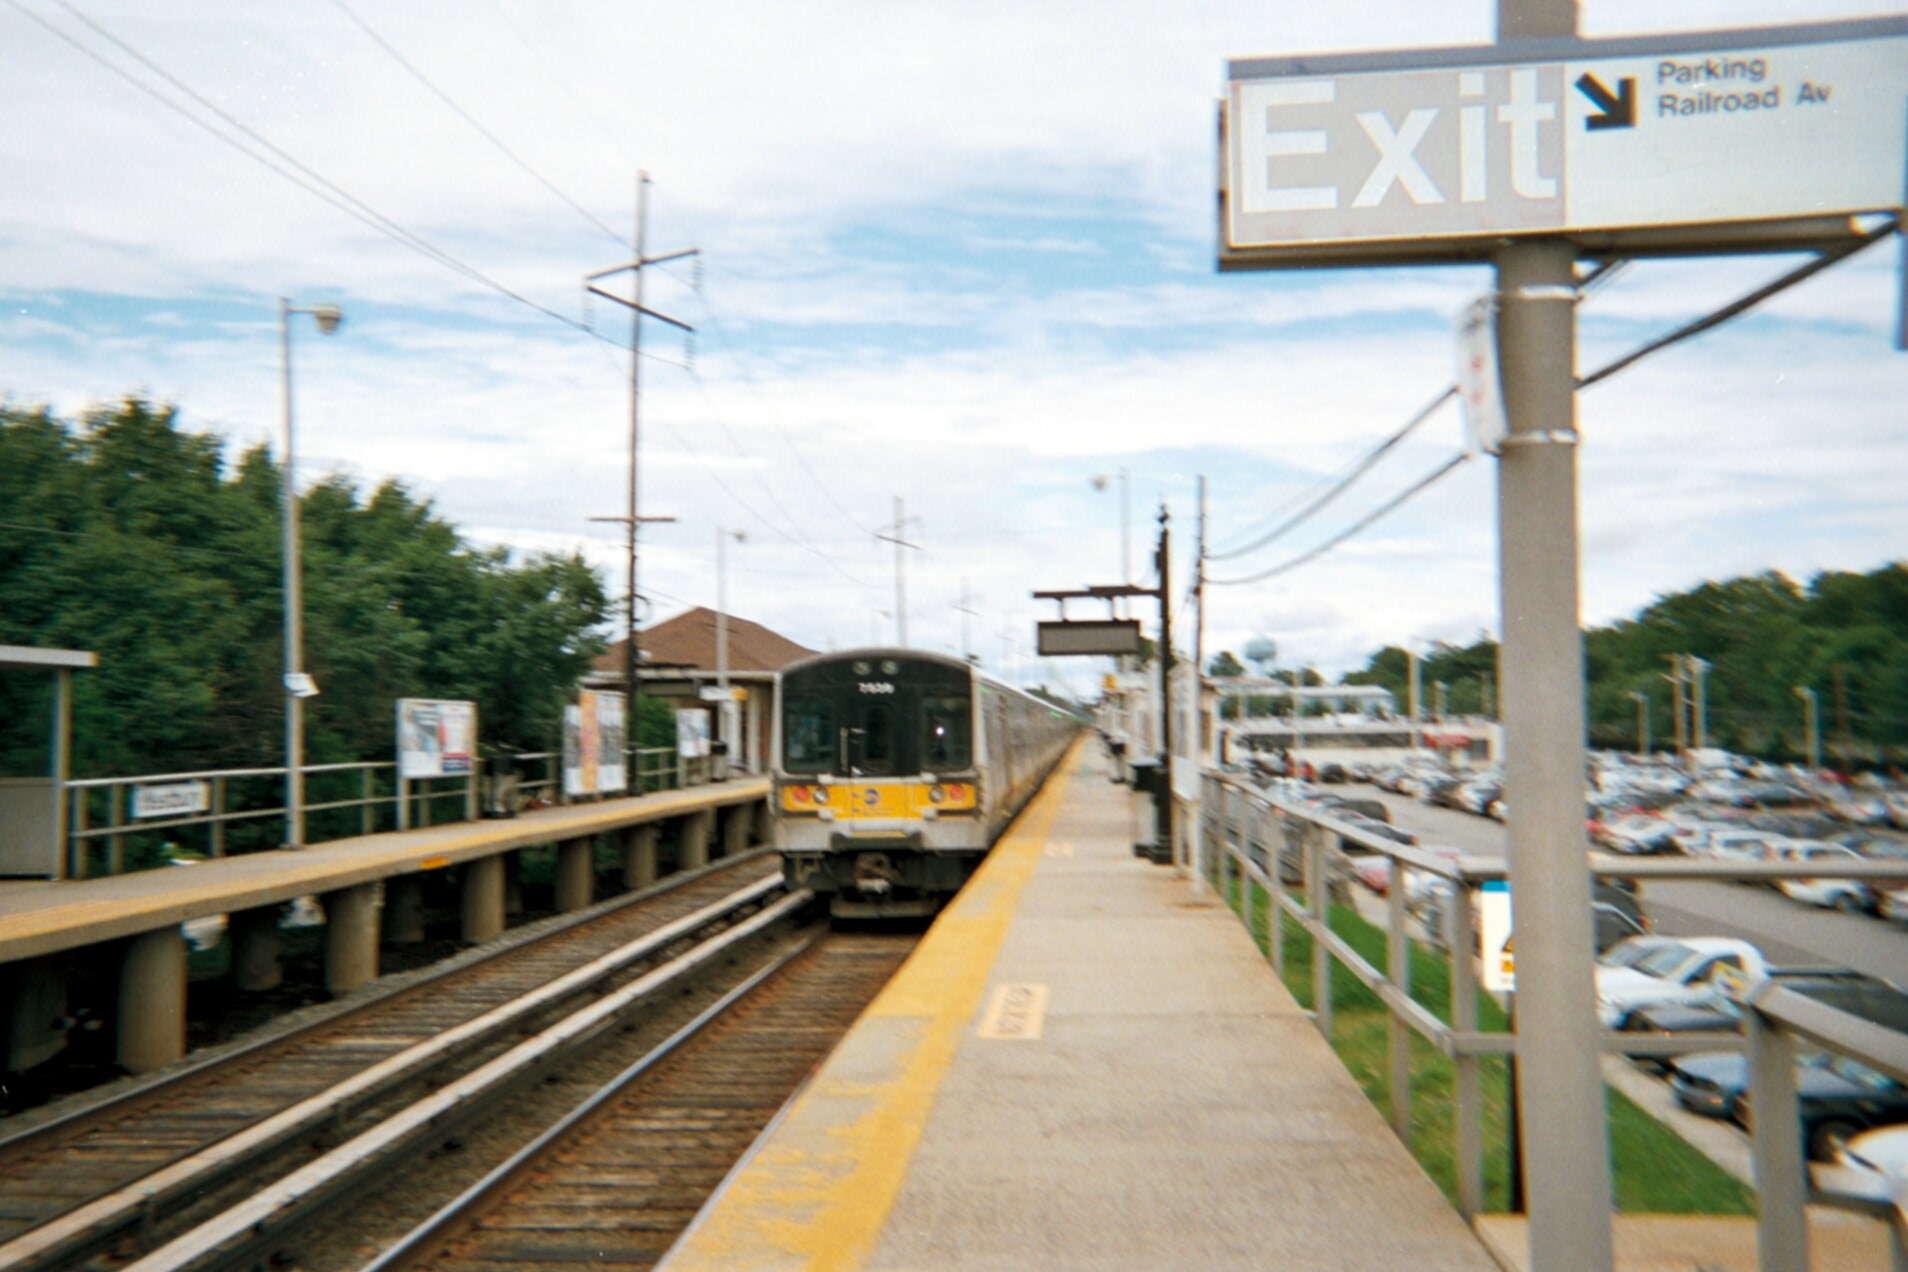 Central Railroad Of Long Island